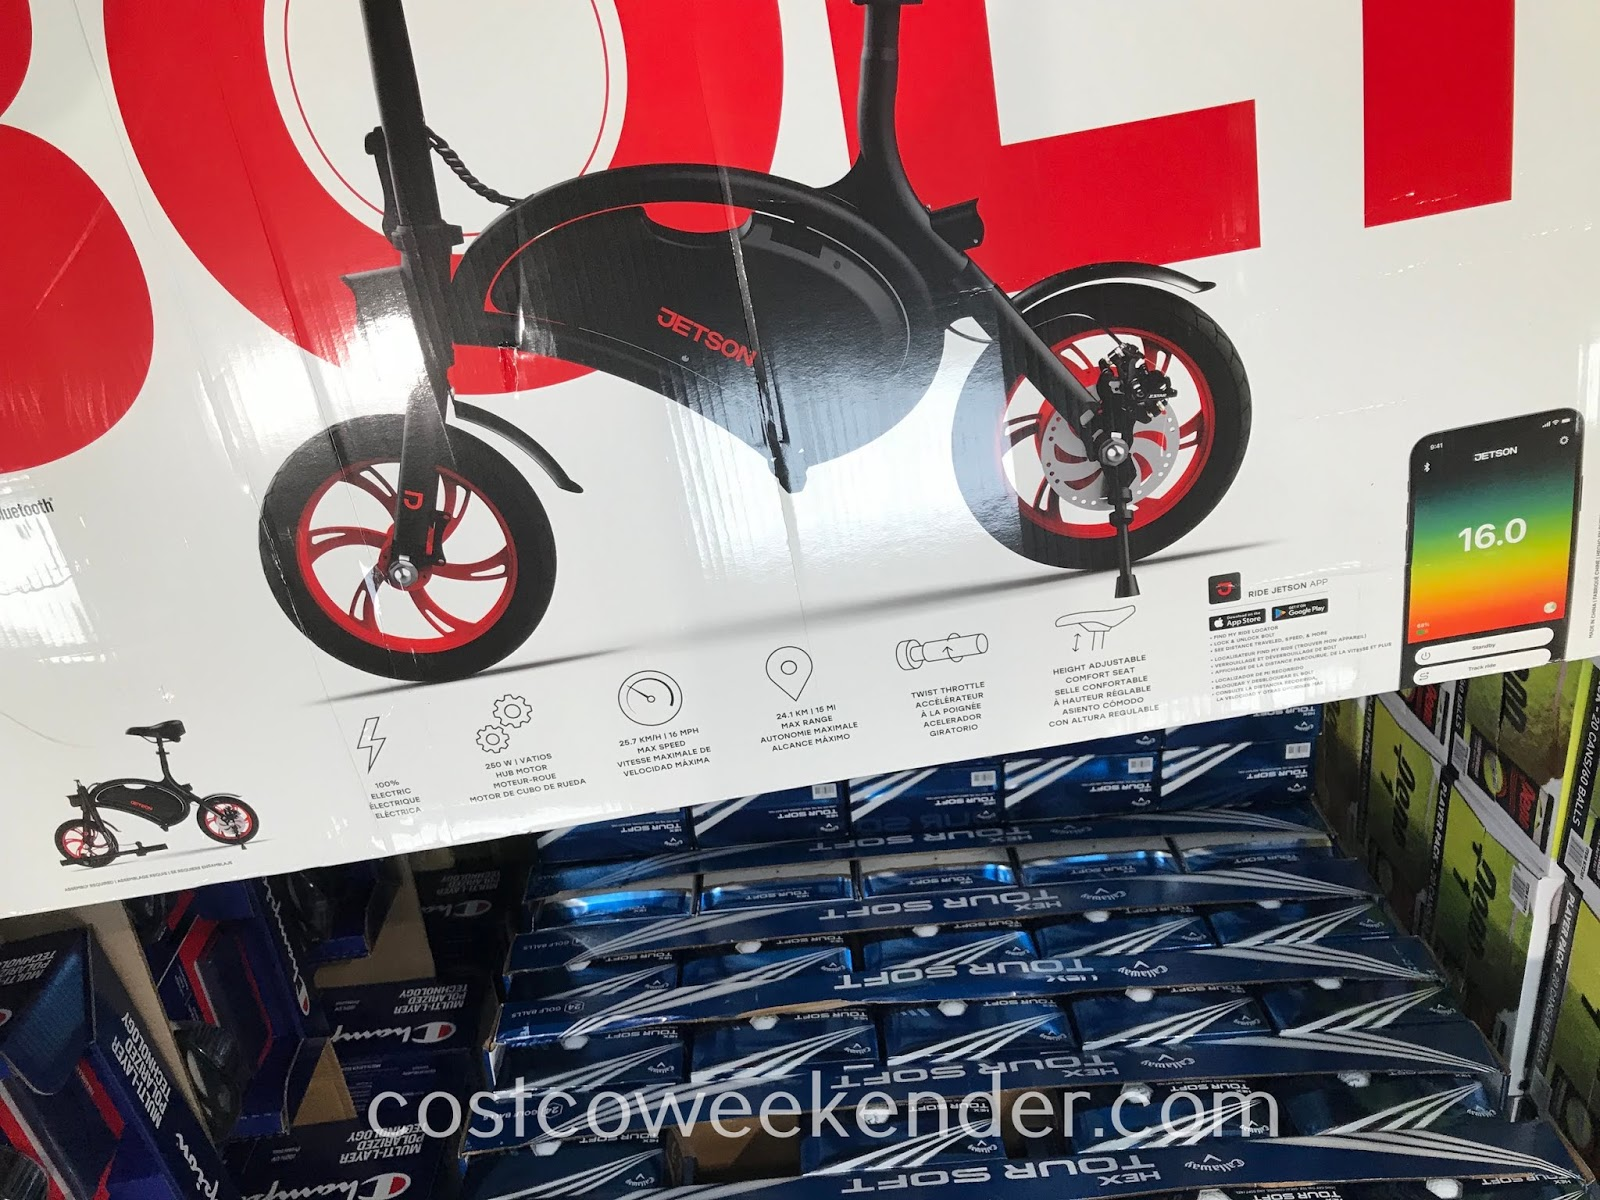 Costco 1266814 - Jetson Bolt Folding Electric Ride-On: great as a mode of transportation or recreation